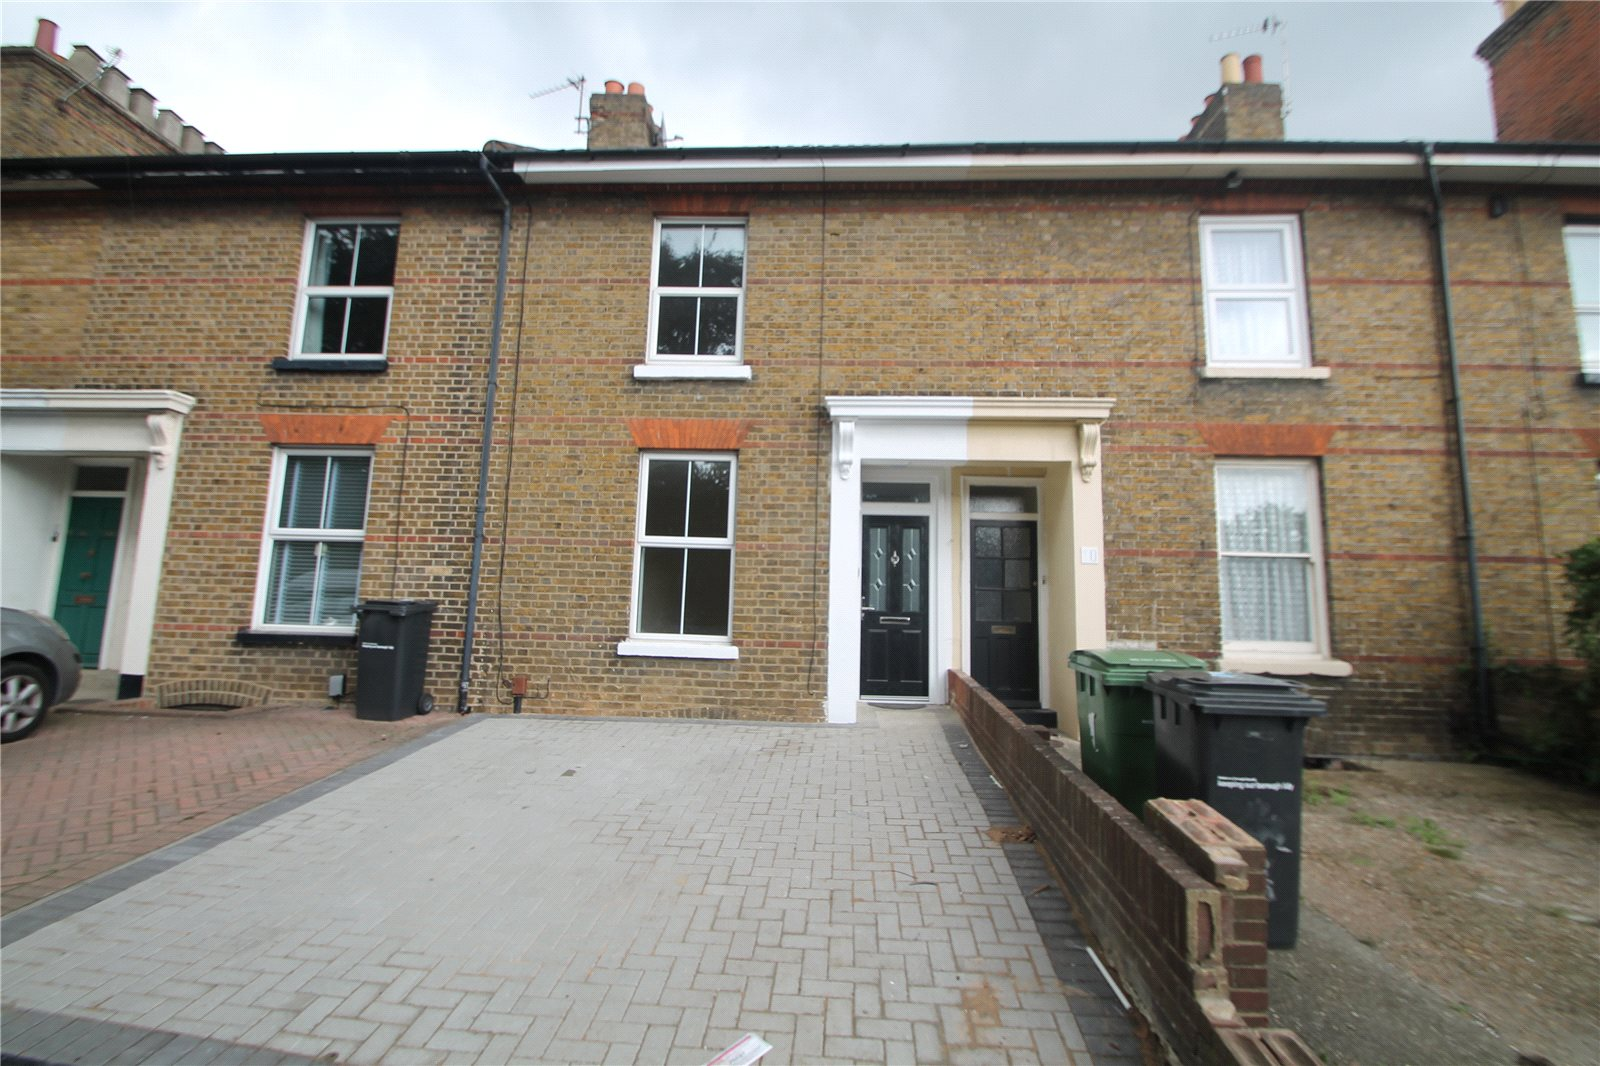 3 Bedrooms Terraced House for sale in Fisher Street Maidstone Kent ME14